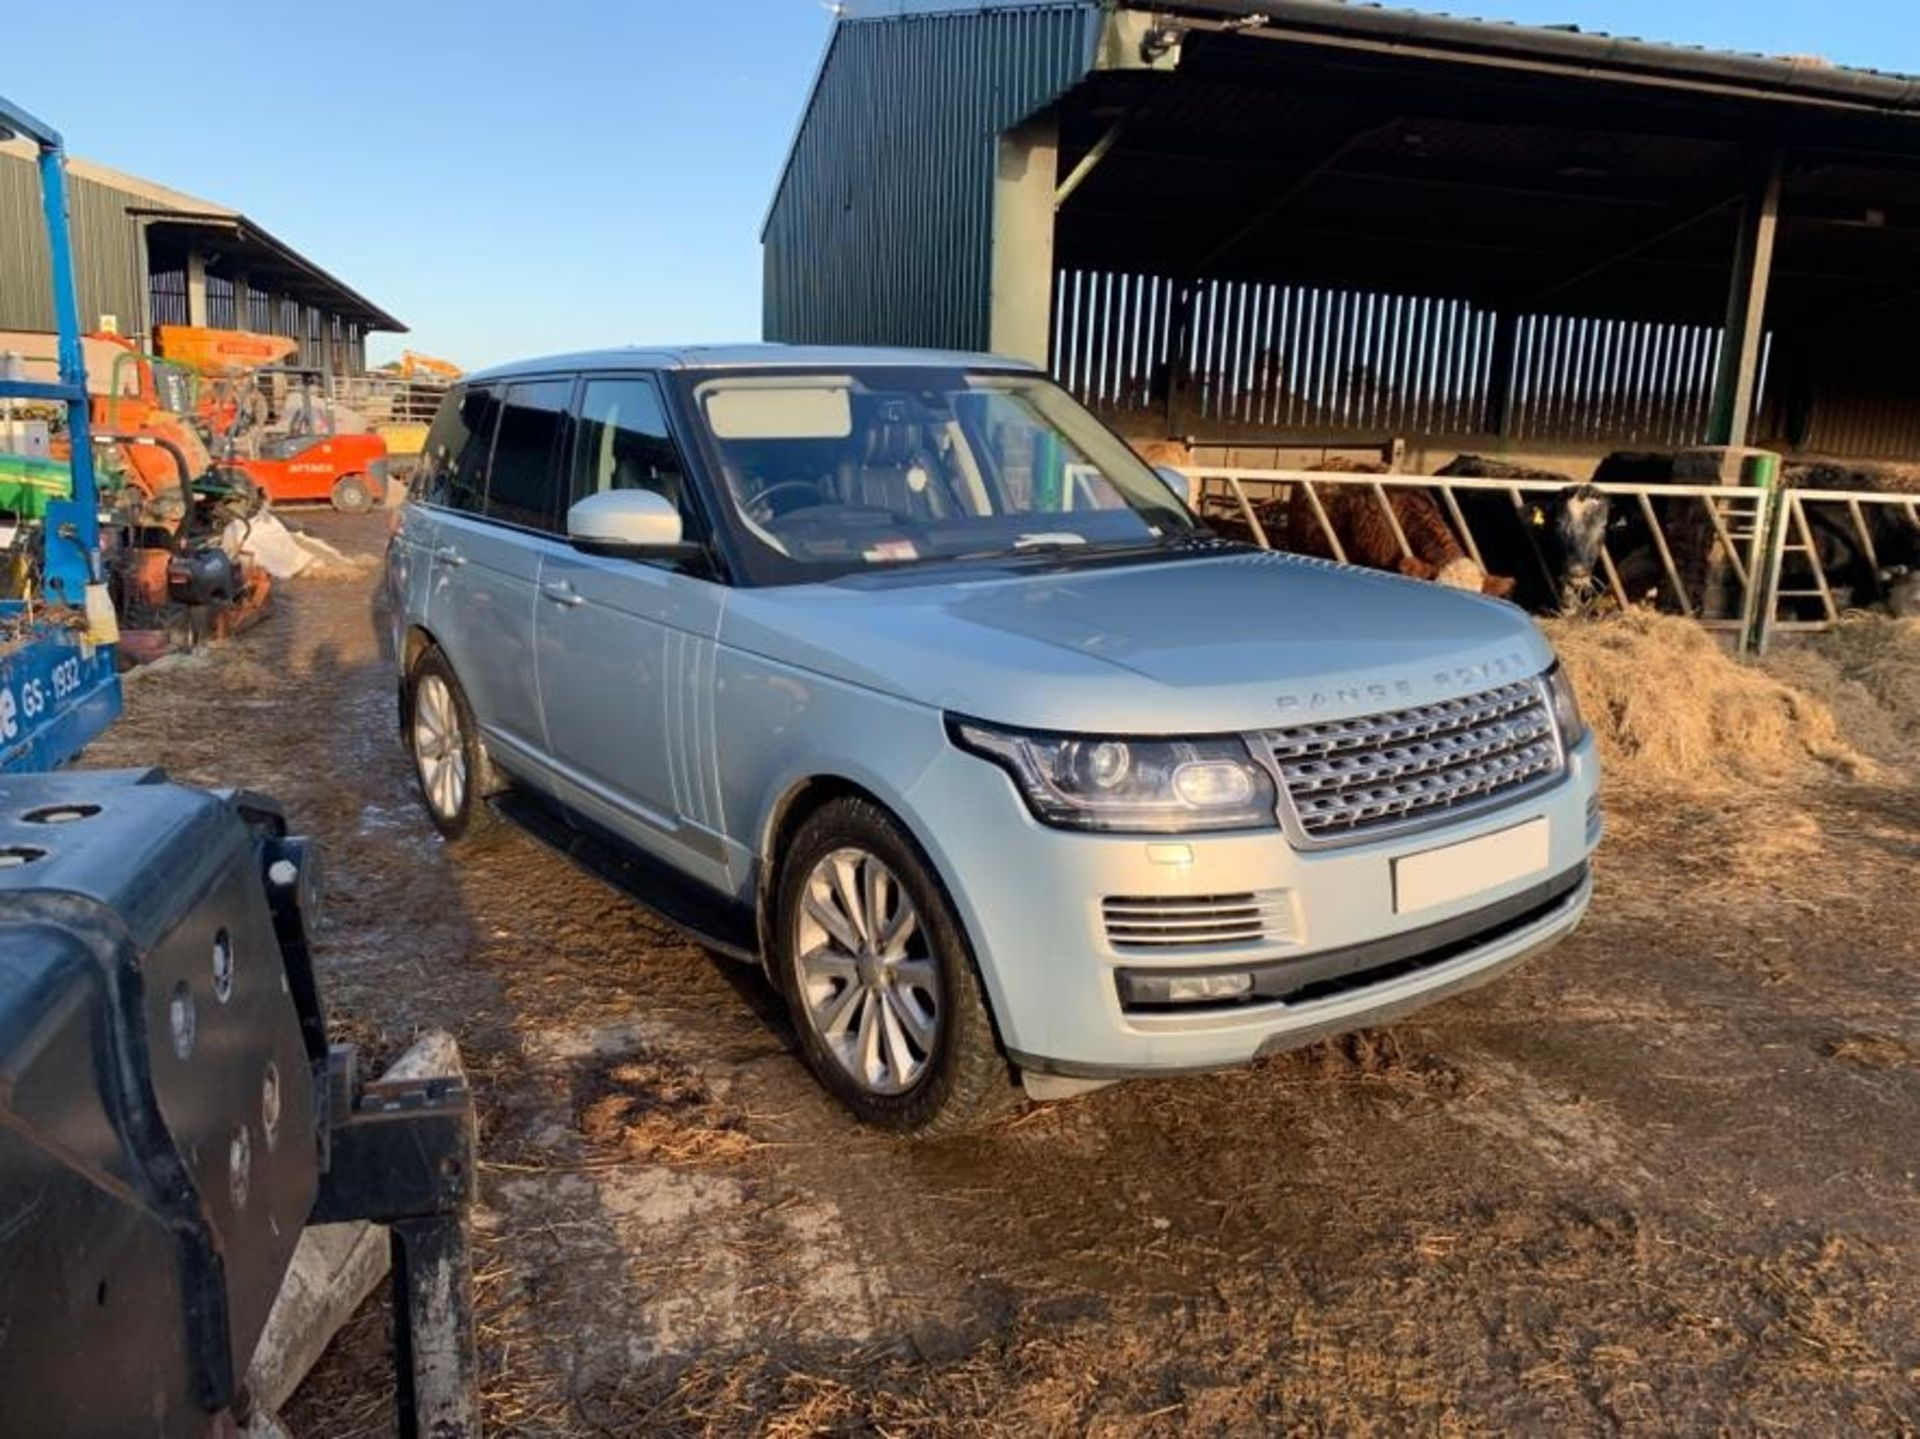 Lot 55 - 2015/15 REG LAND ROVER RANGE ROVER VOGUE SE SDV8 4.4L SILVER DIESEL 4X4, SHOWING 1 FORMER KEEPER